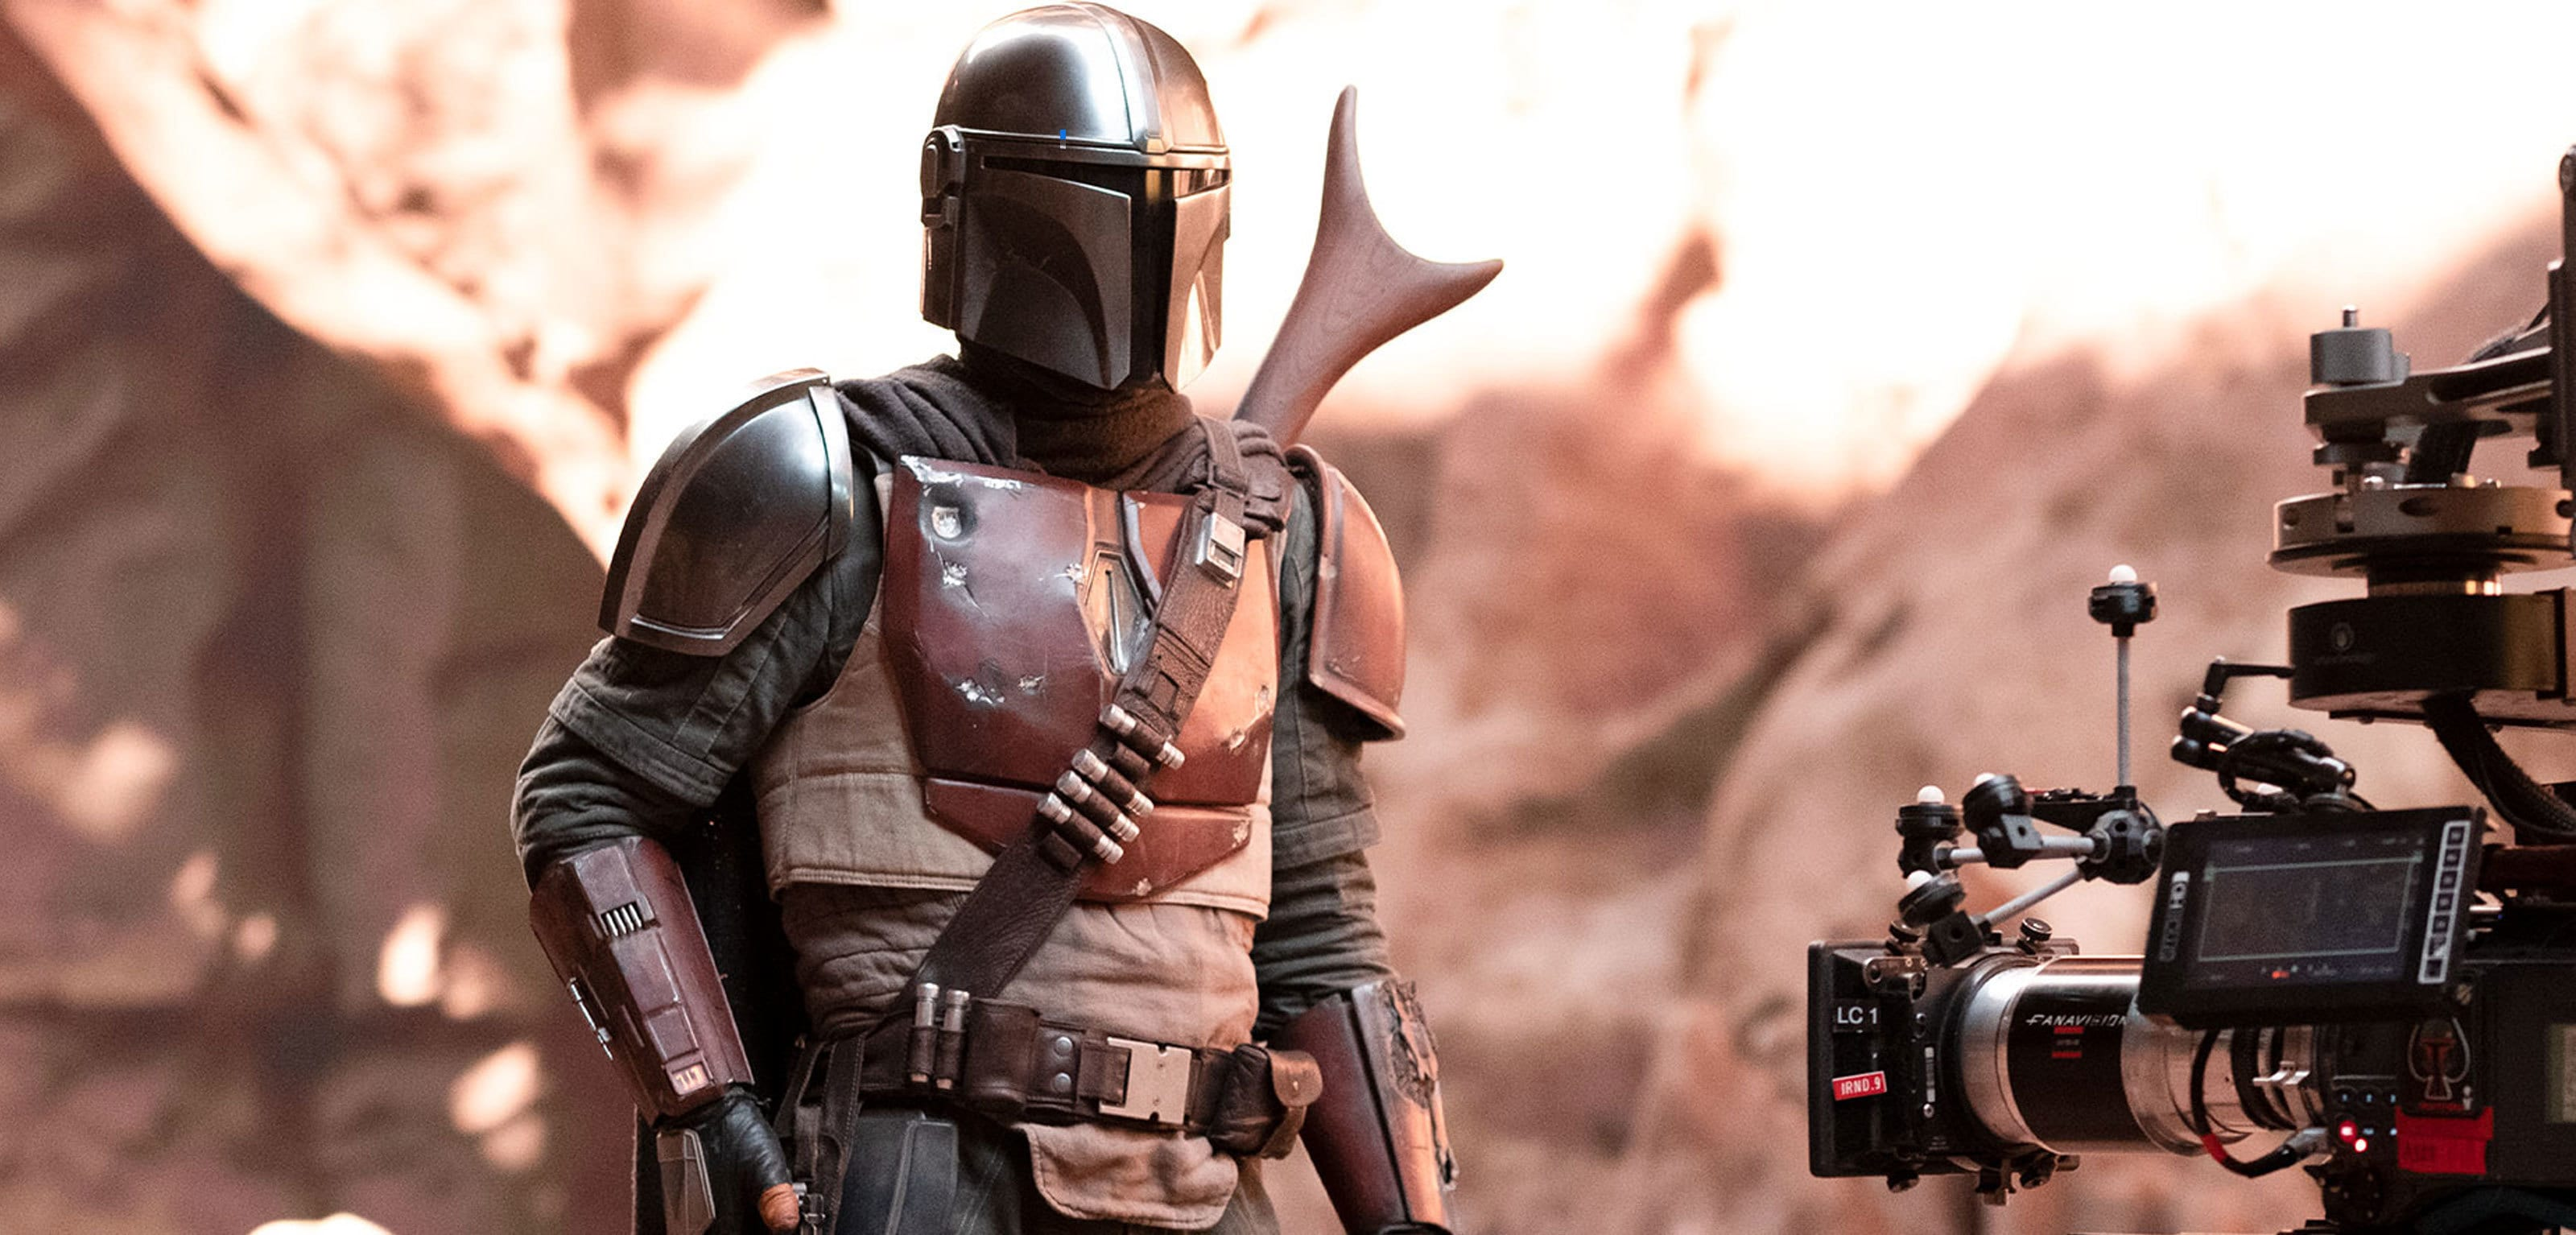 Une photo de série Disney Gallery Star Wars: The Mandalorian